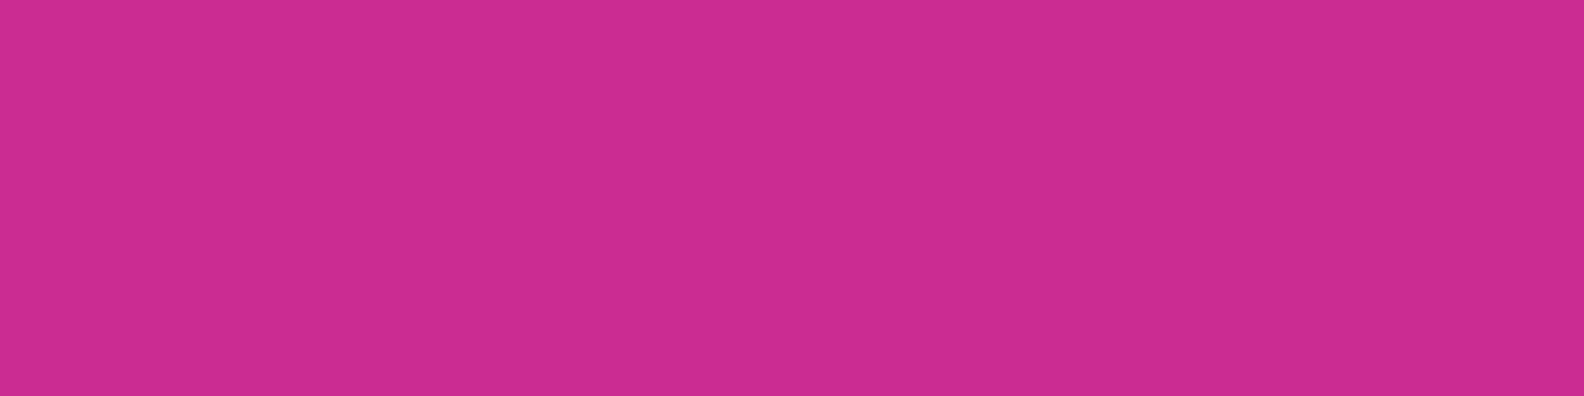 1584x396 Royal Fuchsia Solid Color Background